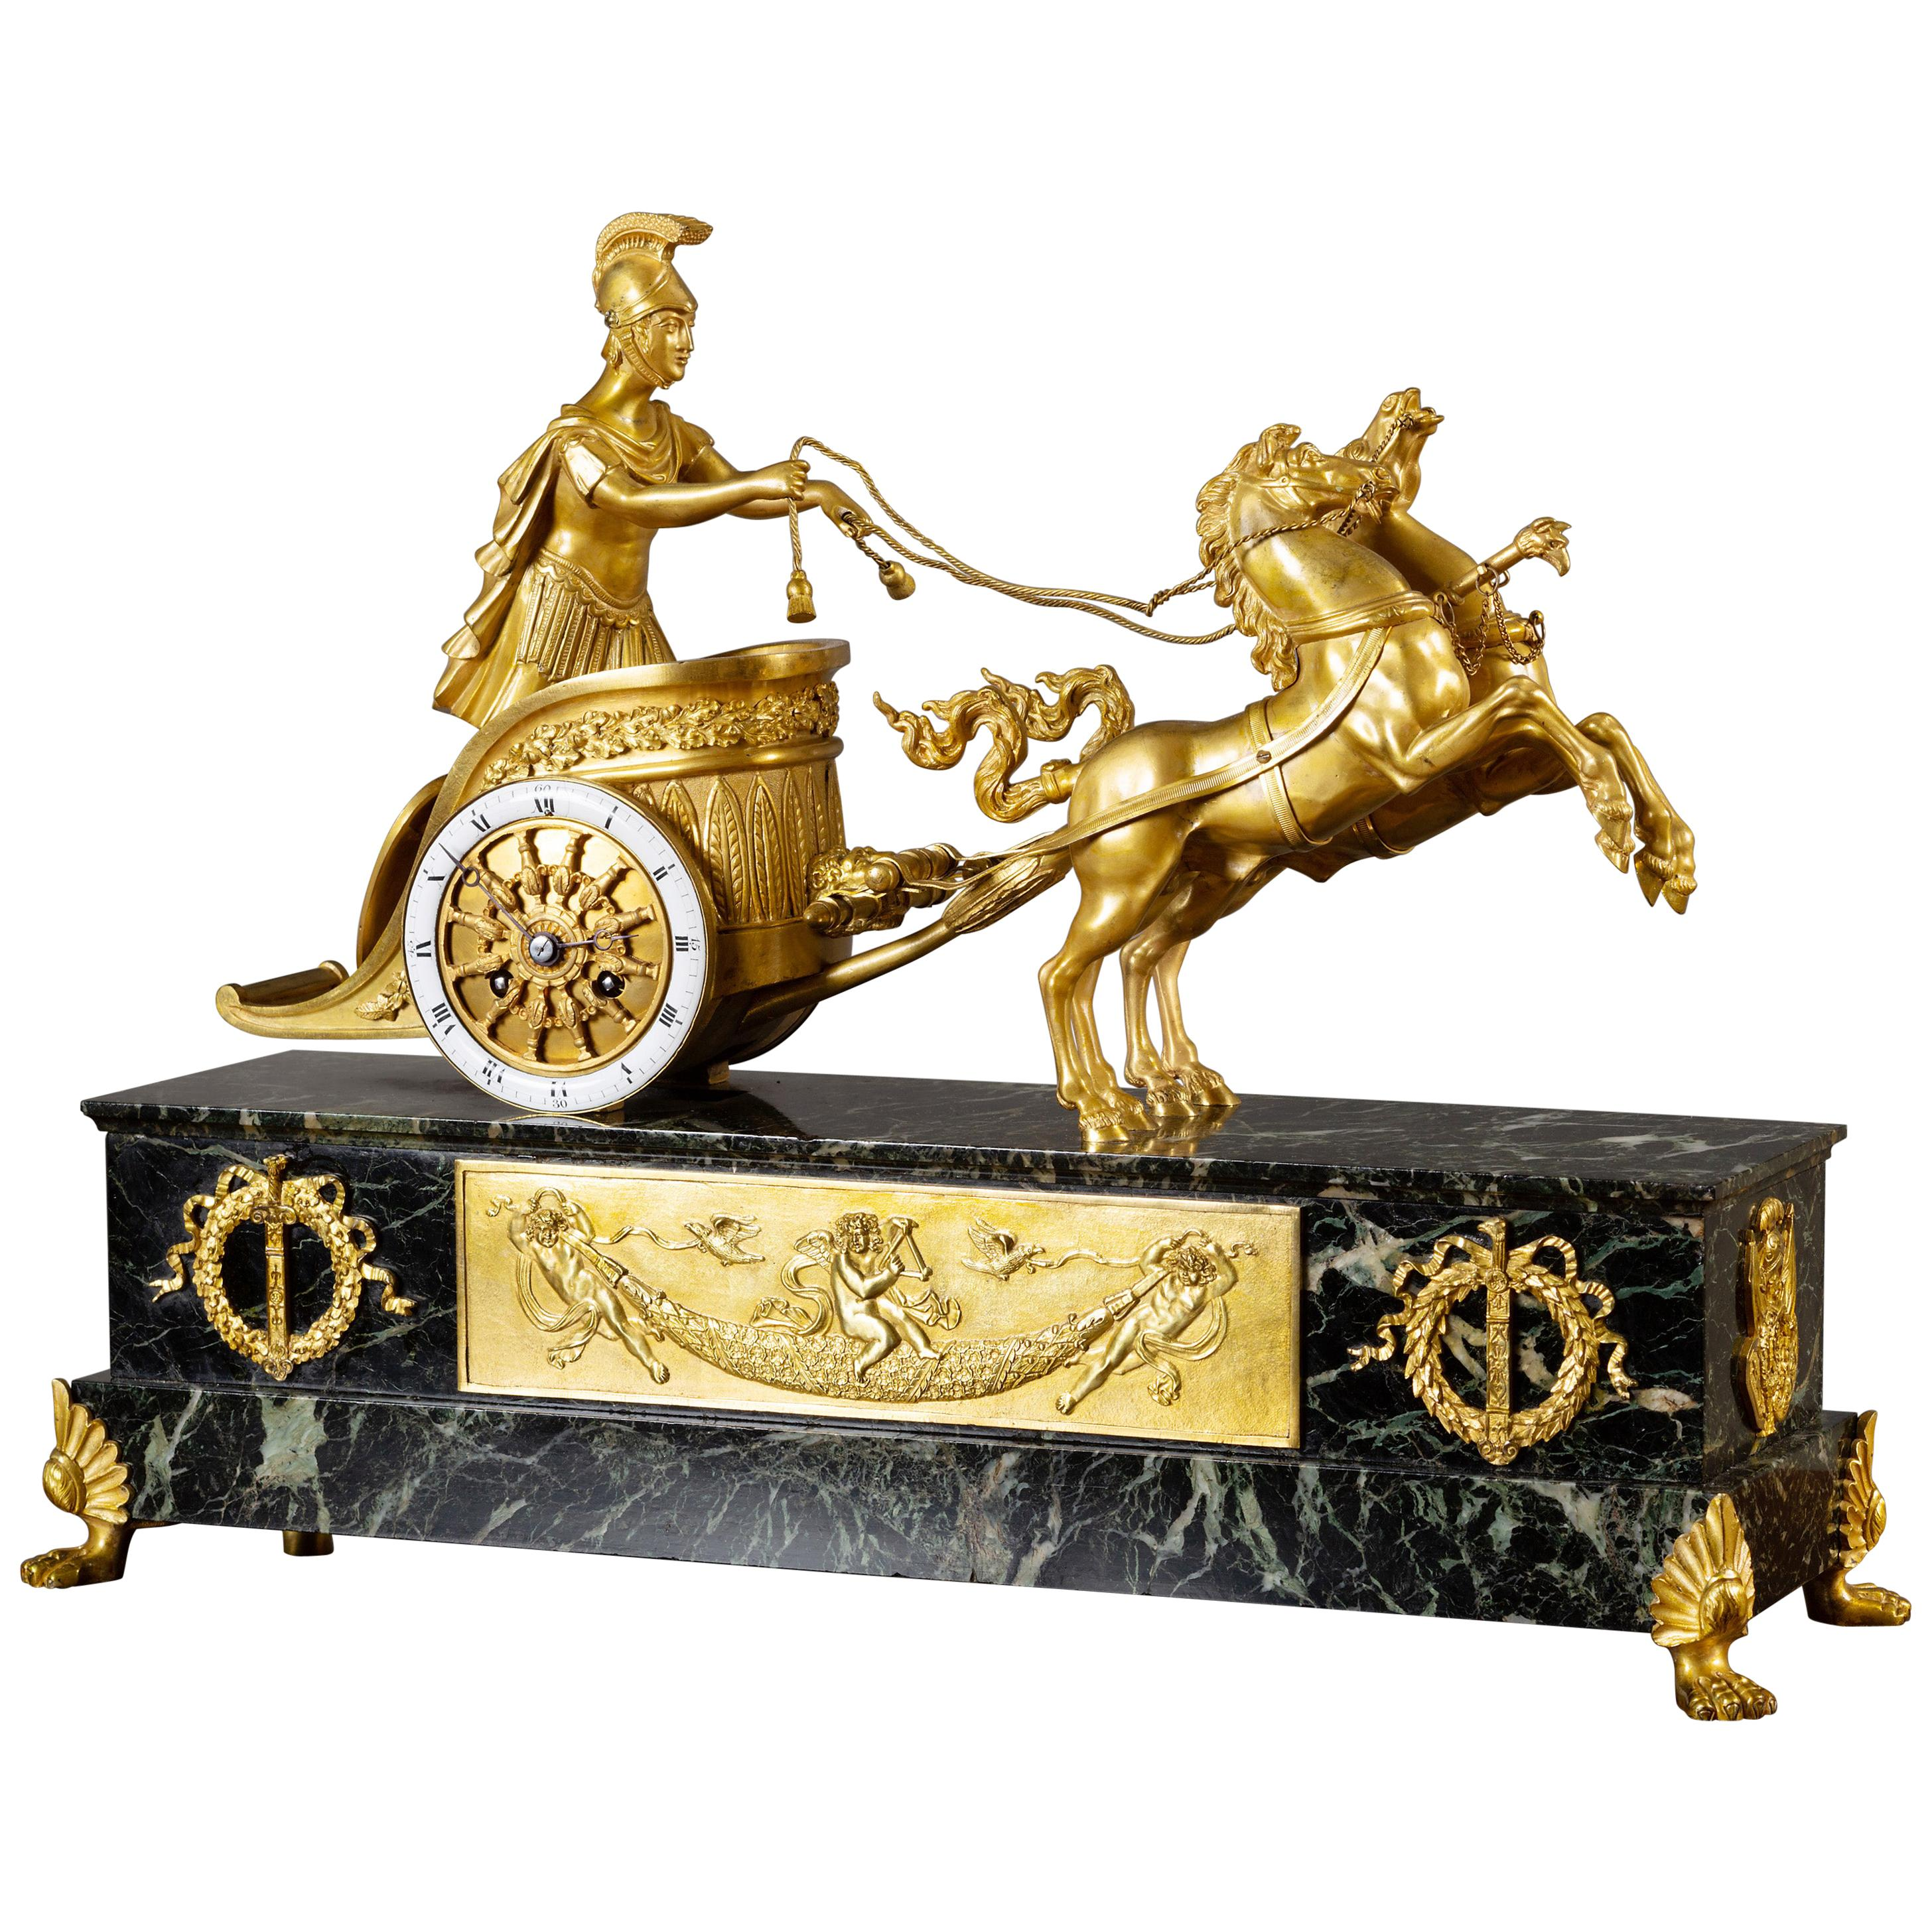 French Ormolu and Marble Chariot Mantel Clock by Vincenti